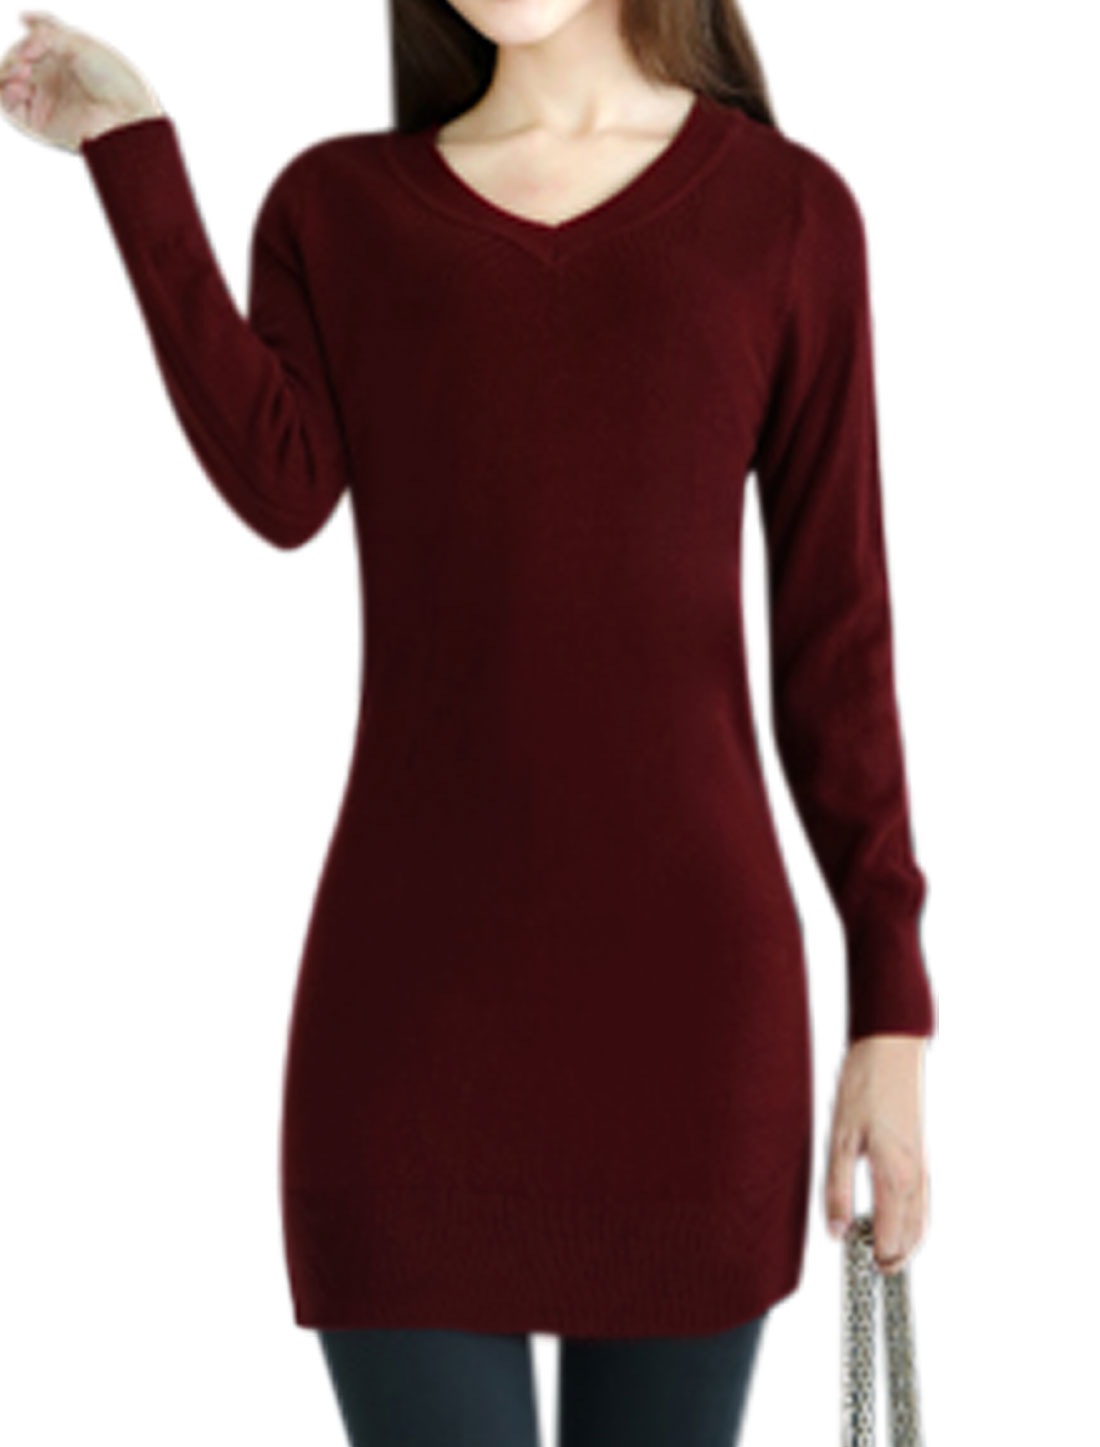 Women New Style Slim Fit Long Sleeves Burgundy Tunic Knit Shirt XS